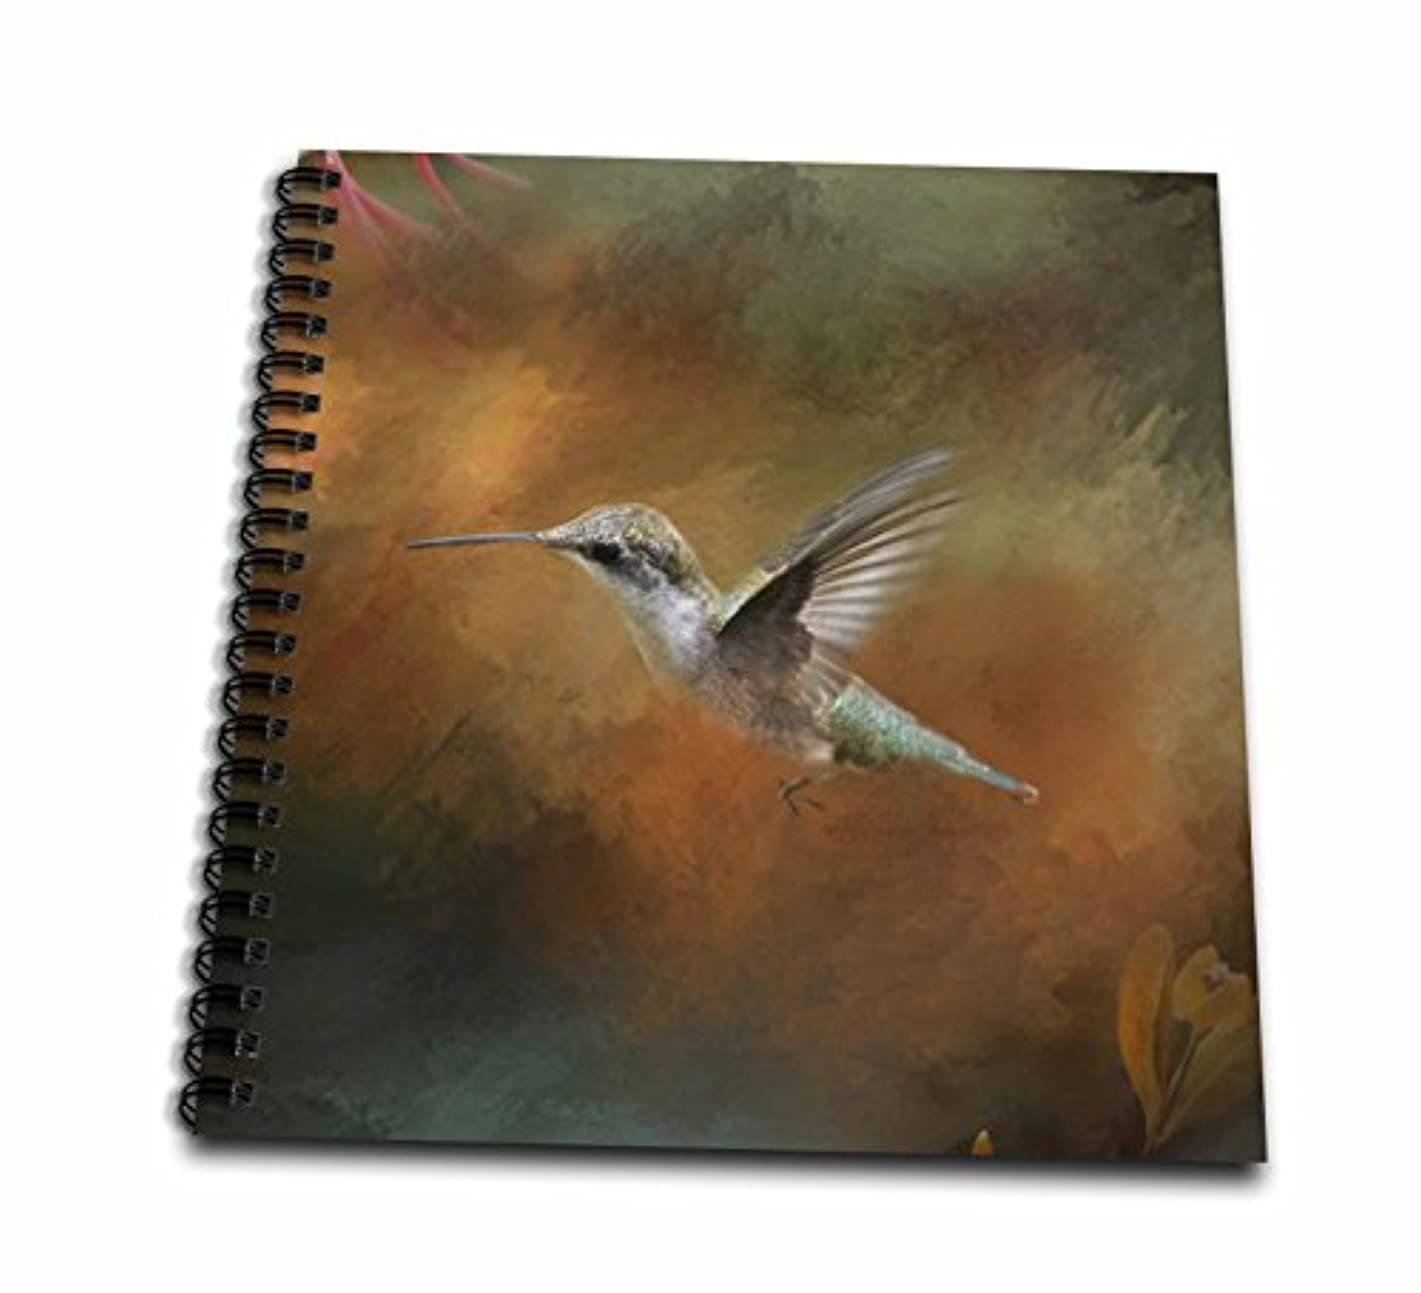 3dRose db_79486_2 Hummingbird Old Master Fine Art Floral Iii-Memory Book, 12 by 12-Inch